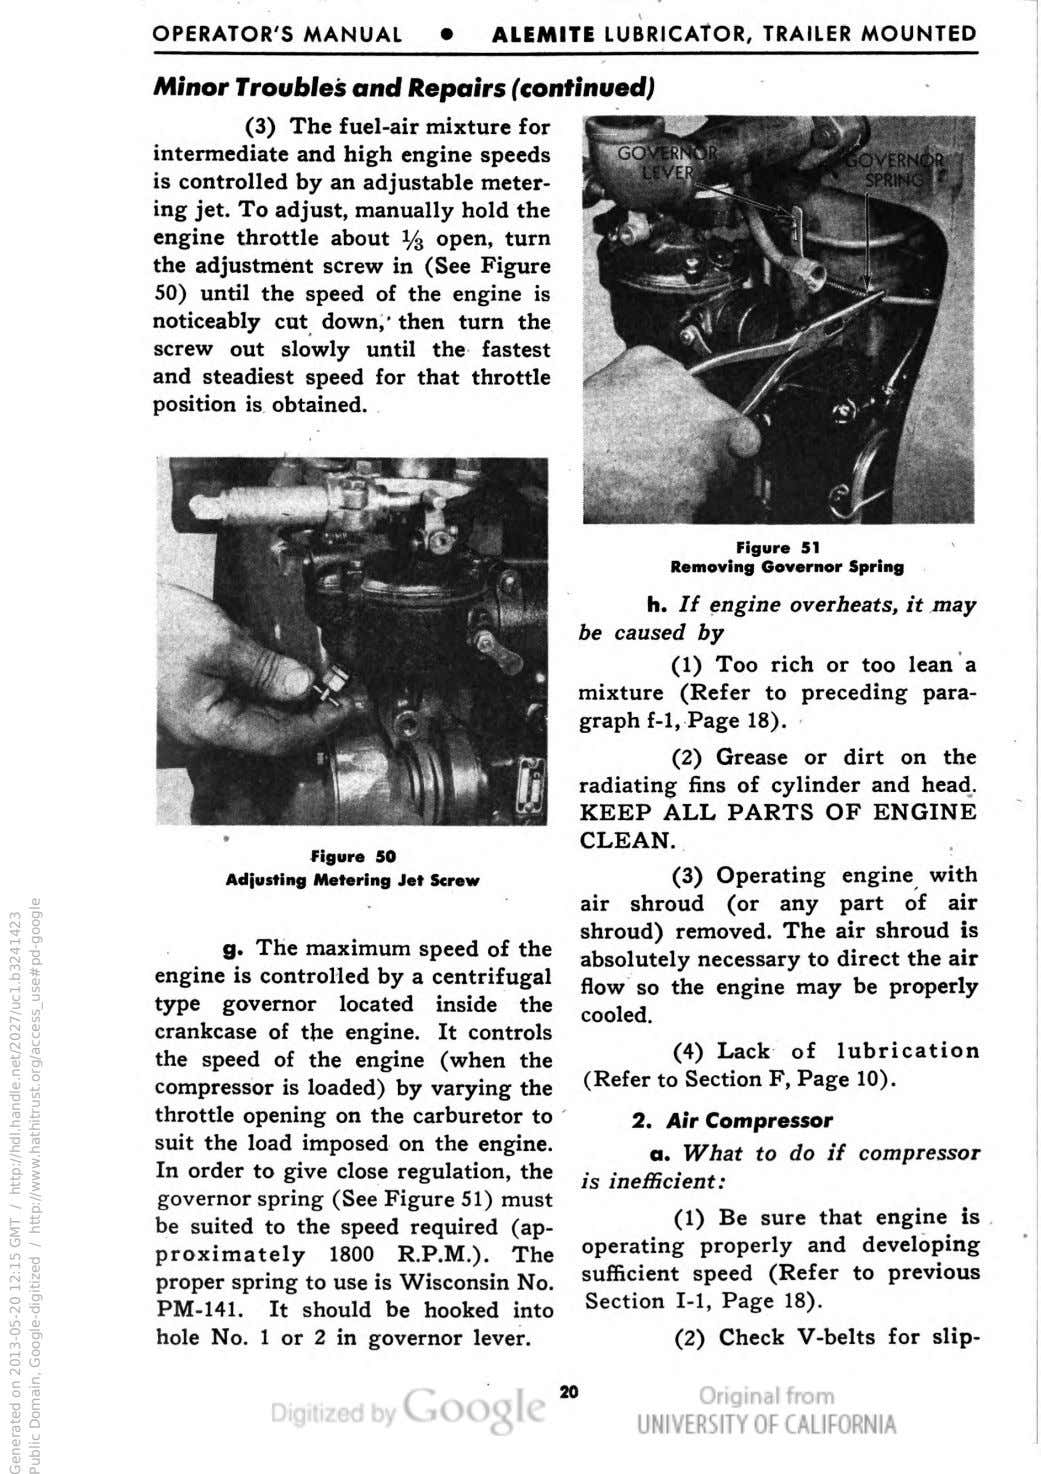 OPERATOR'S MANUAL ALEMITE LUBRICATOR, TRAILER MOUNTED Minor Troubles and Repairs (continued) (3) The fuel-air